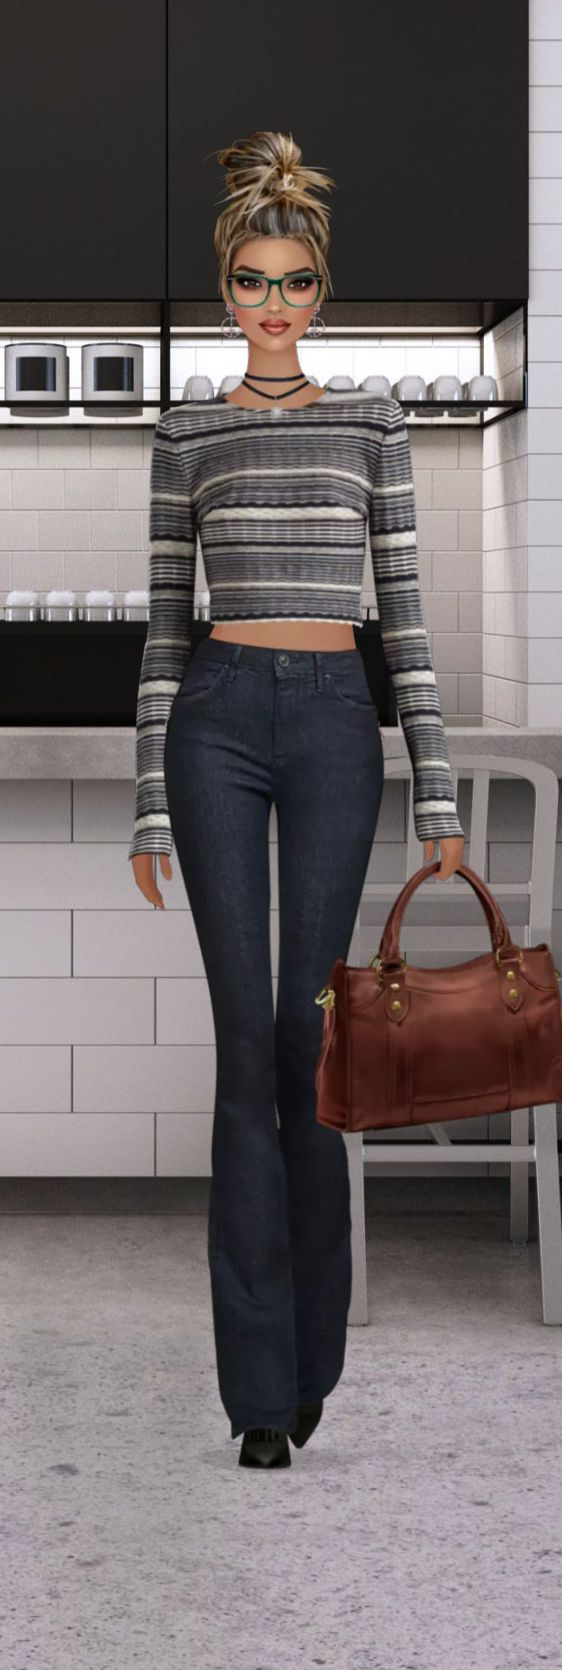 17db354bf istggg guys this game is my life!!!!!! download CovetFash